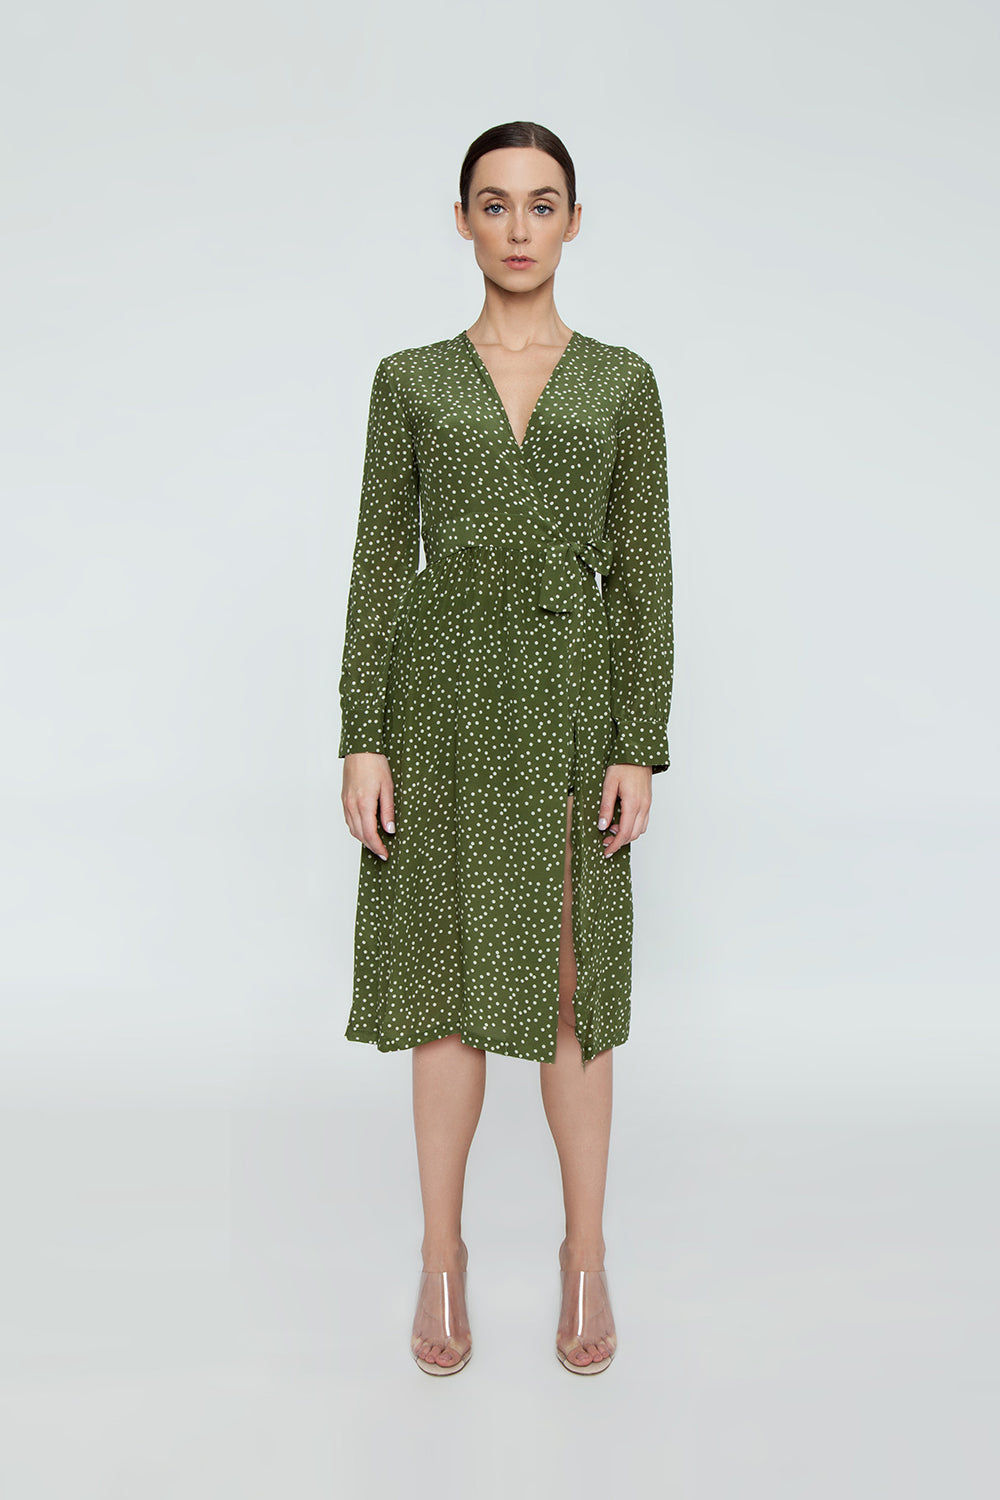 ADRIANA DEGREAS Silk Crepe De Chine Long Cross Front Dress With Shorts - Mille Punti Green Dot Print Dress | Mille Punti Green Dot Print| Adriana Degreas Silk Crepe De Chine Long Cross Front Dress With Shorts - Mille Punti Green Dot Print Long sleeve maxi dress  Wrap style  Shorts included Front View